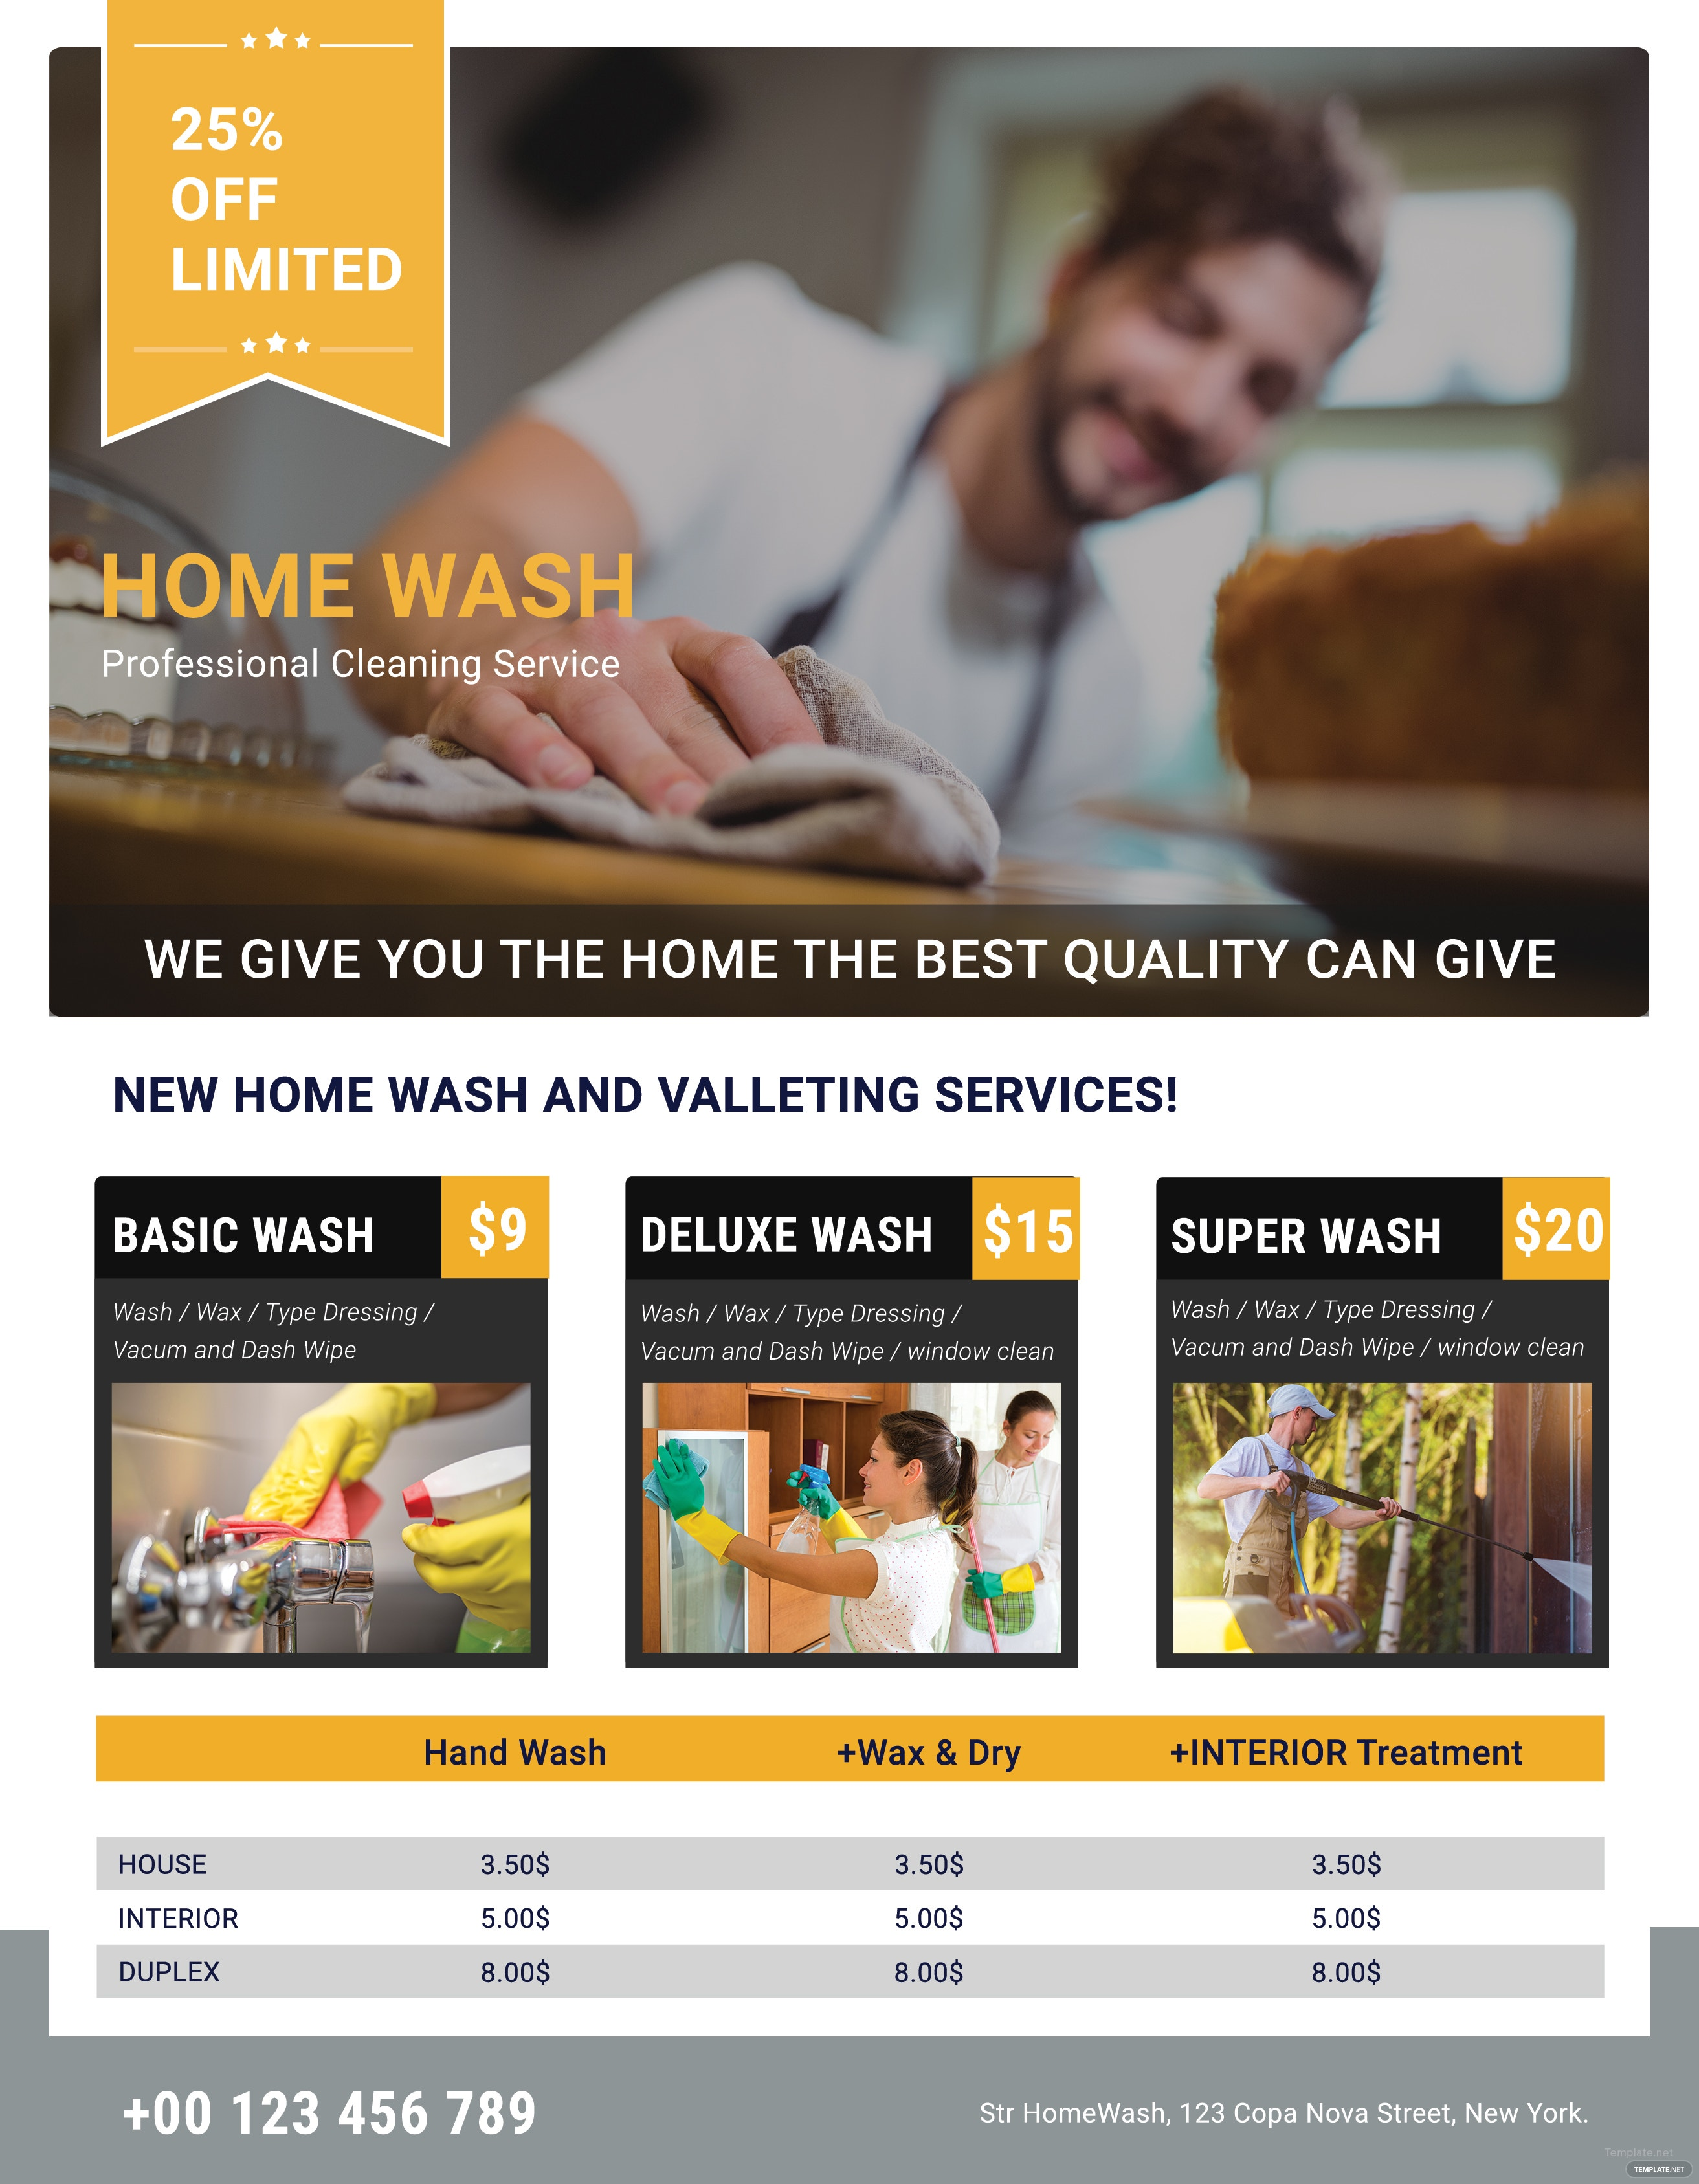 Free Professional Cleaning Services Flyer Template in Adobe ...